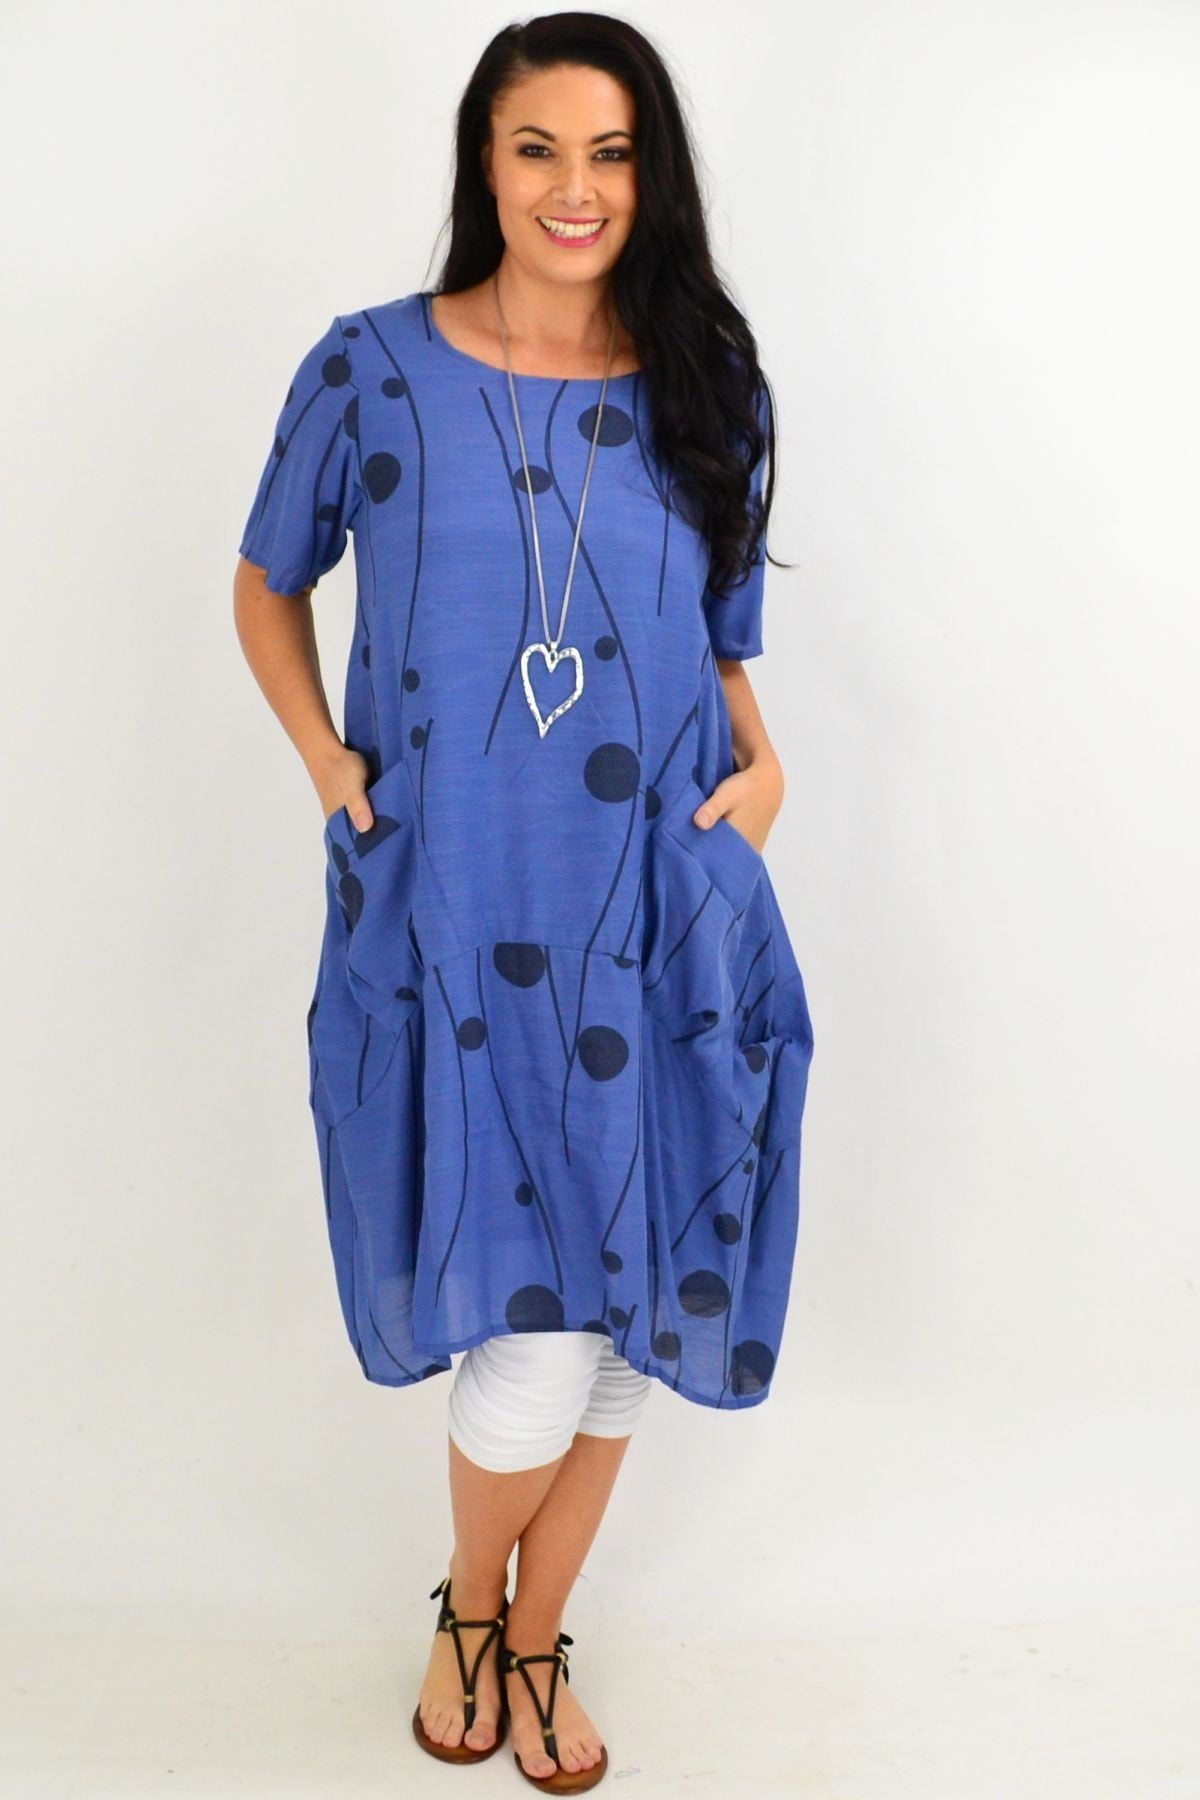 Denim Blue Debs Dots Bubble Tunic Dress | I Love Tunics | Tunic Tops | Tunic | Tunic Dresses  | womens clothing online